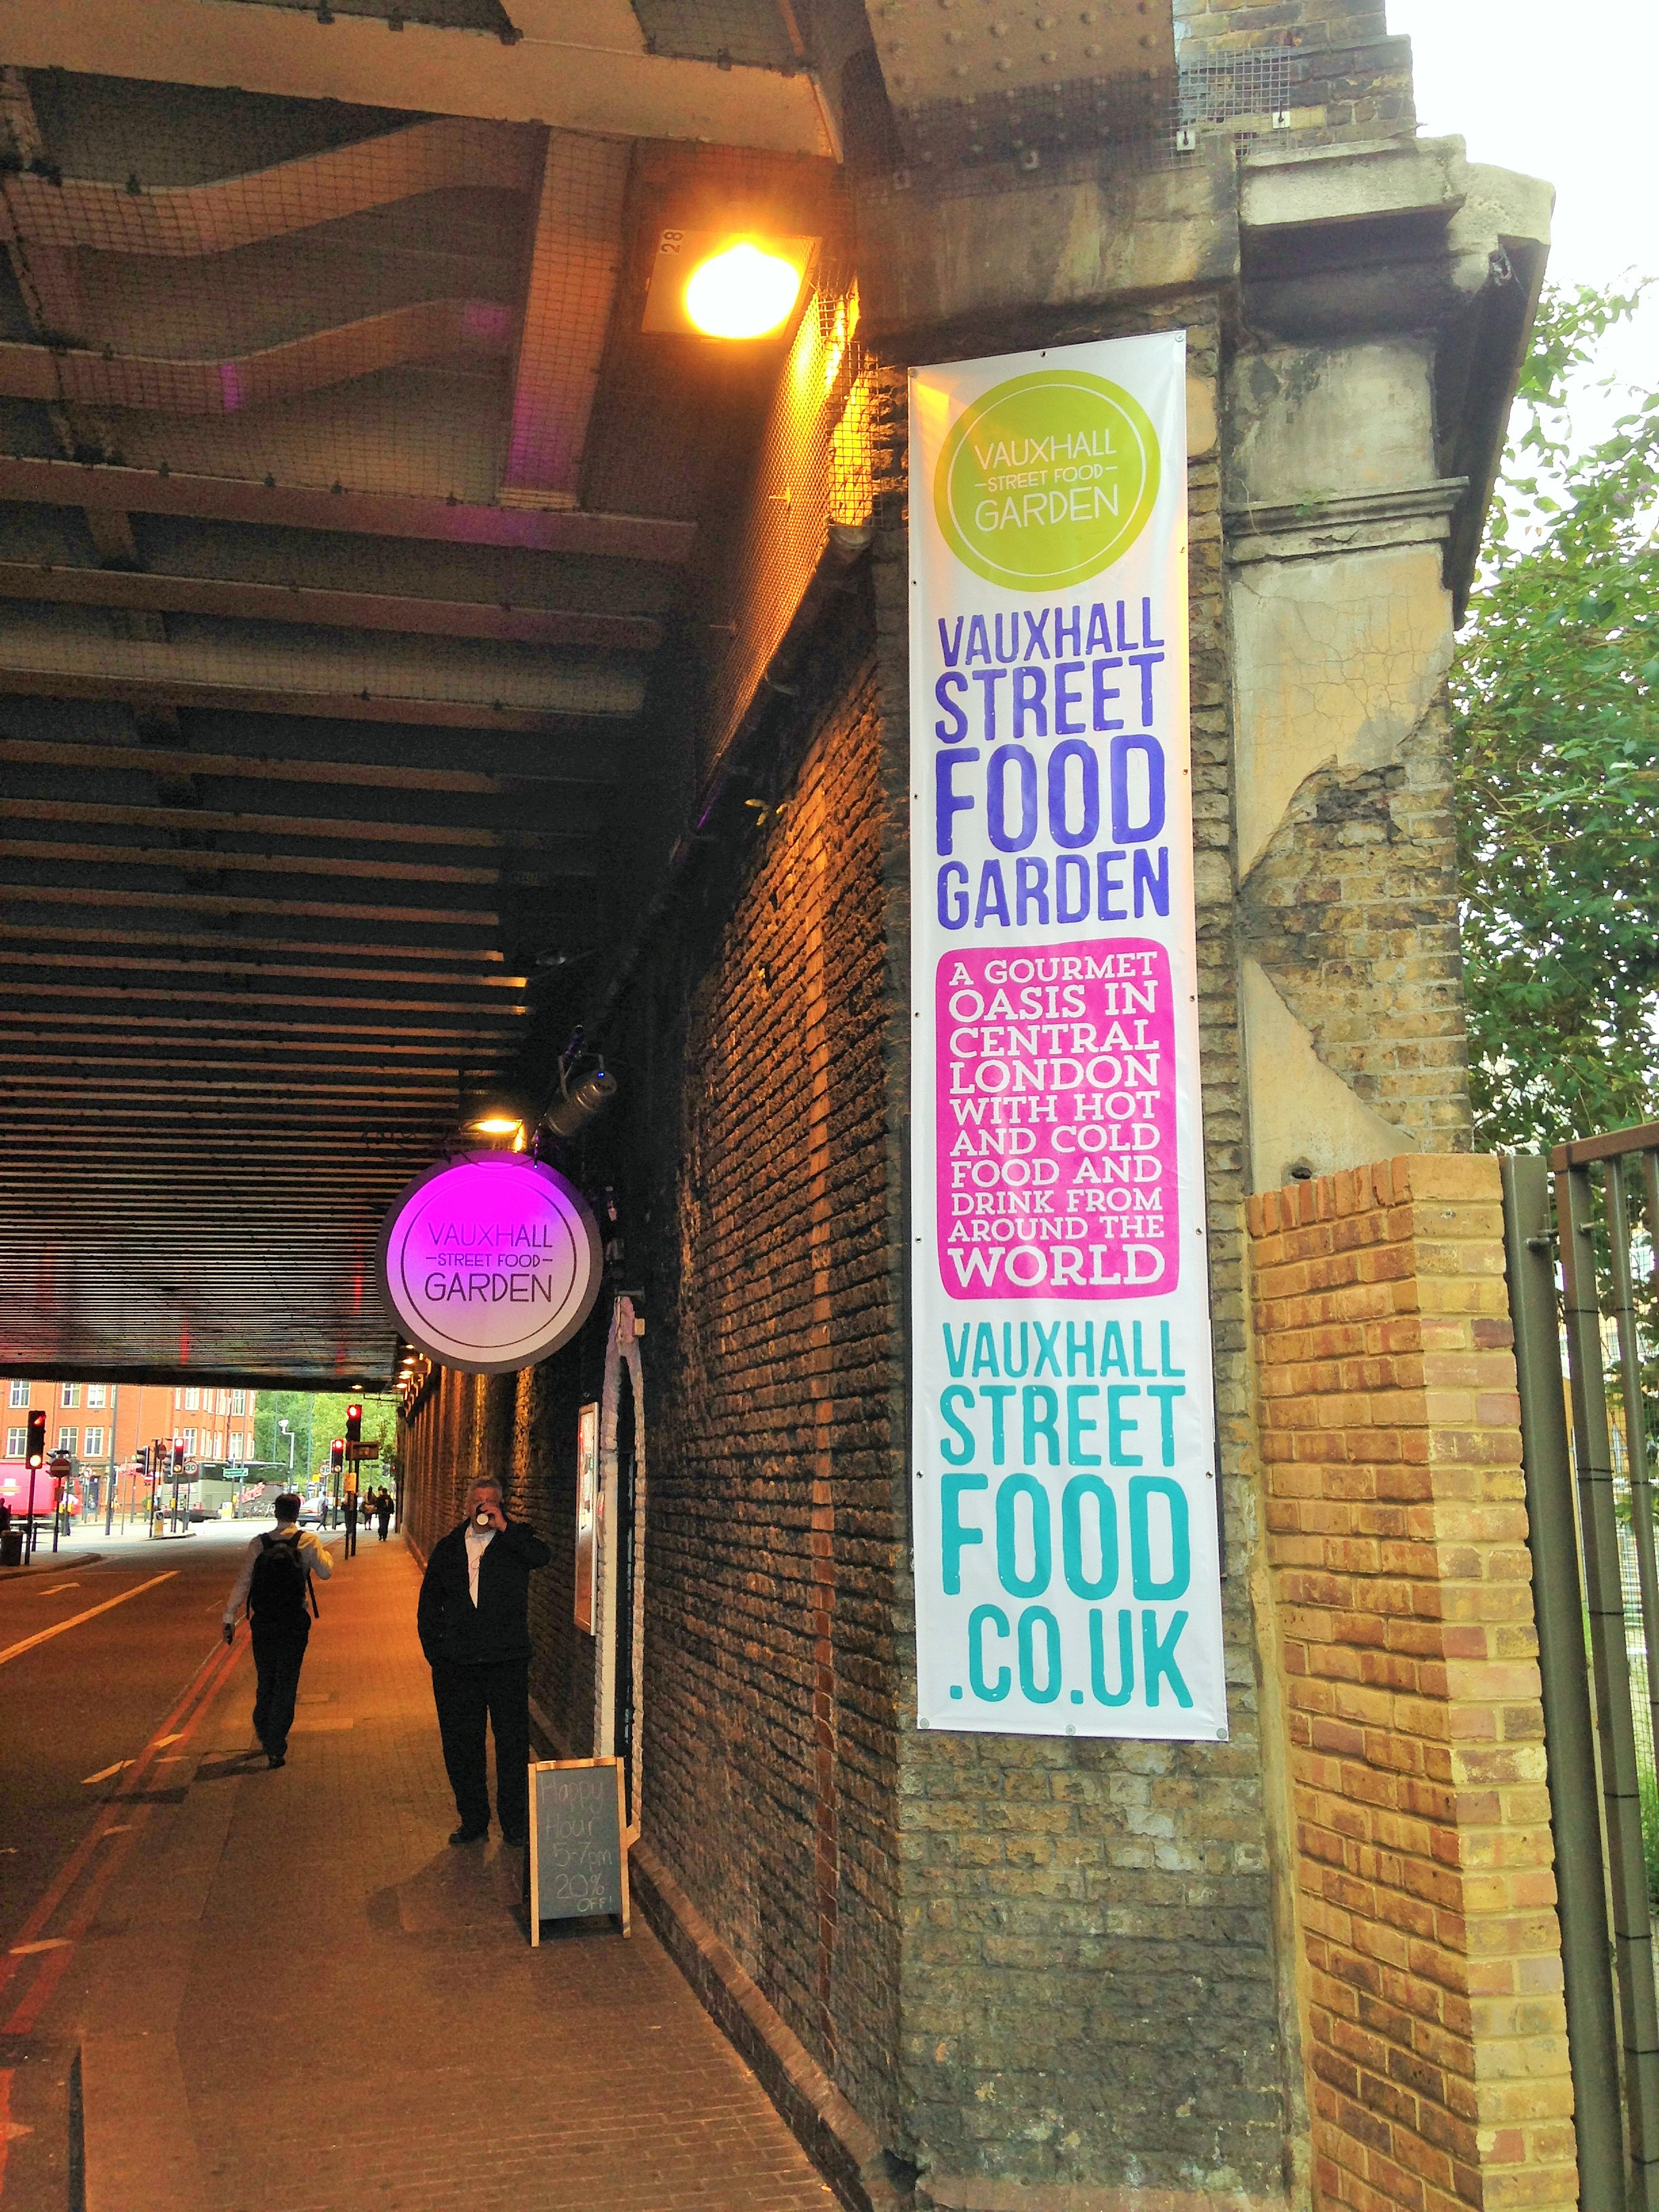 Vauxhall Street Food Market entrance - kenningtonrunoff.com